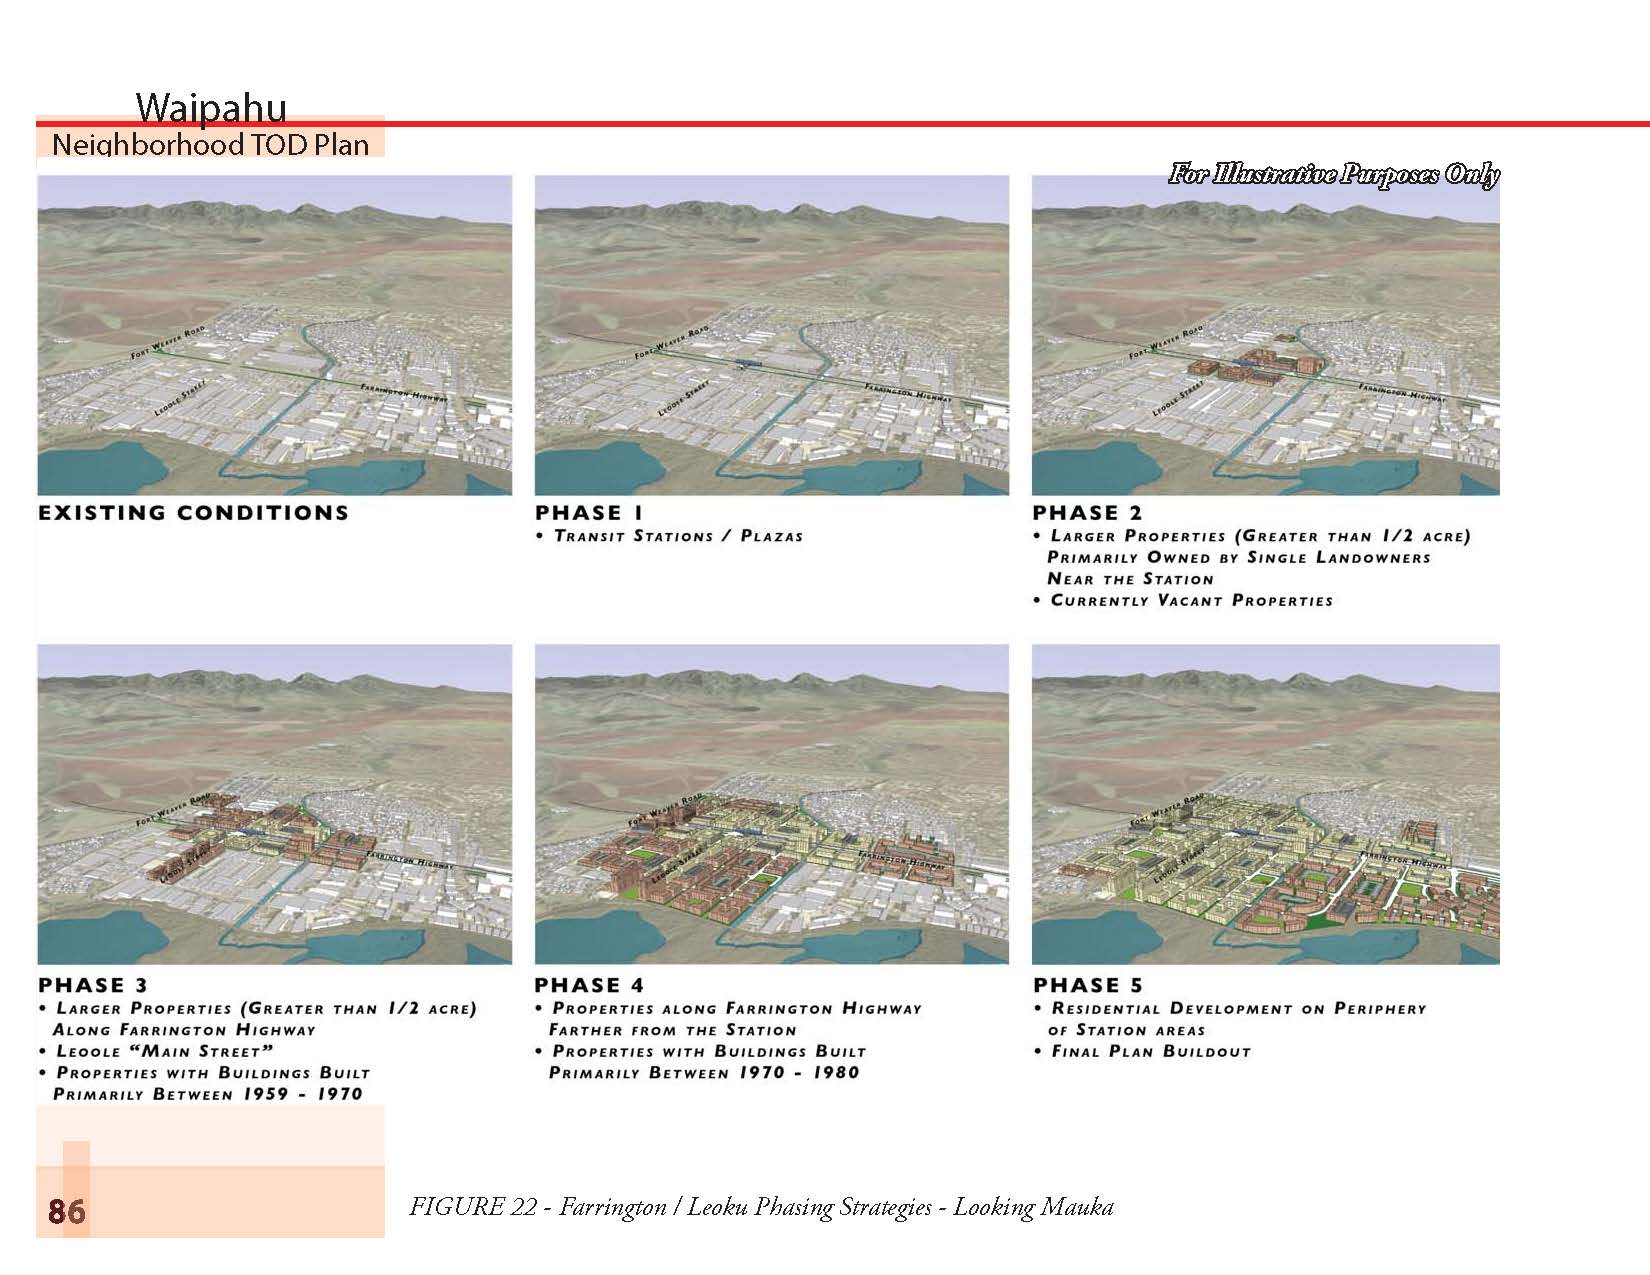 160513_Waipahu Neighborhood TOD Plan_Page_092.jpg